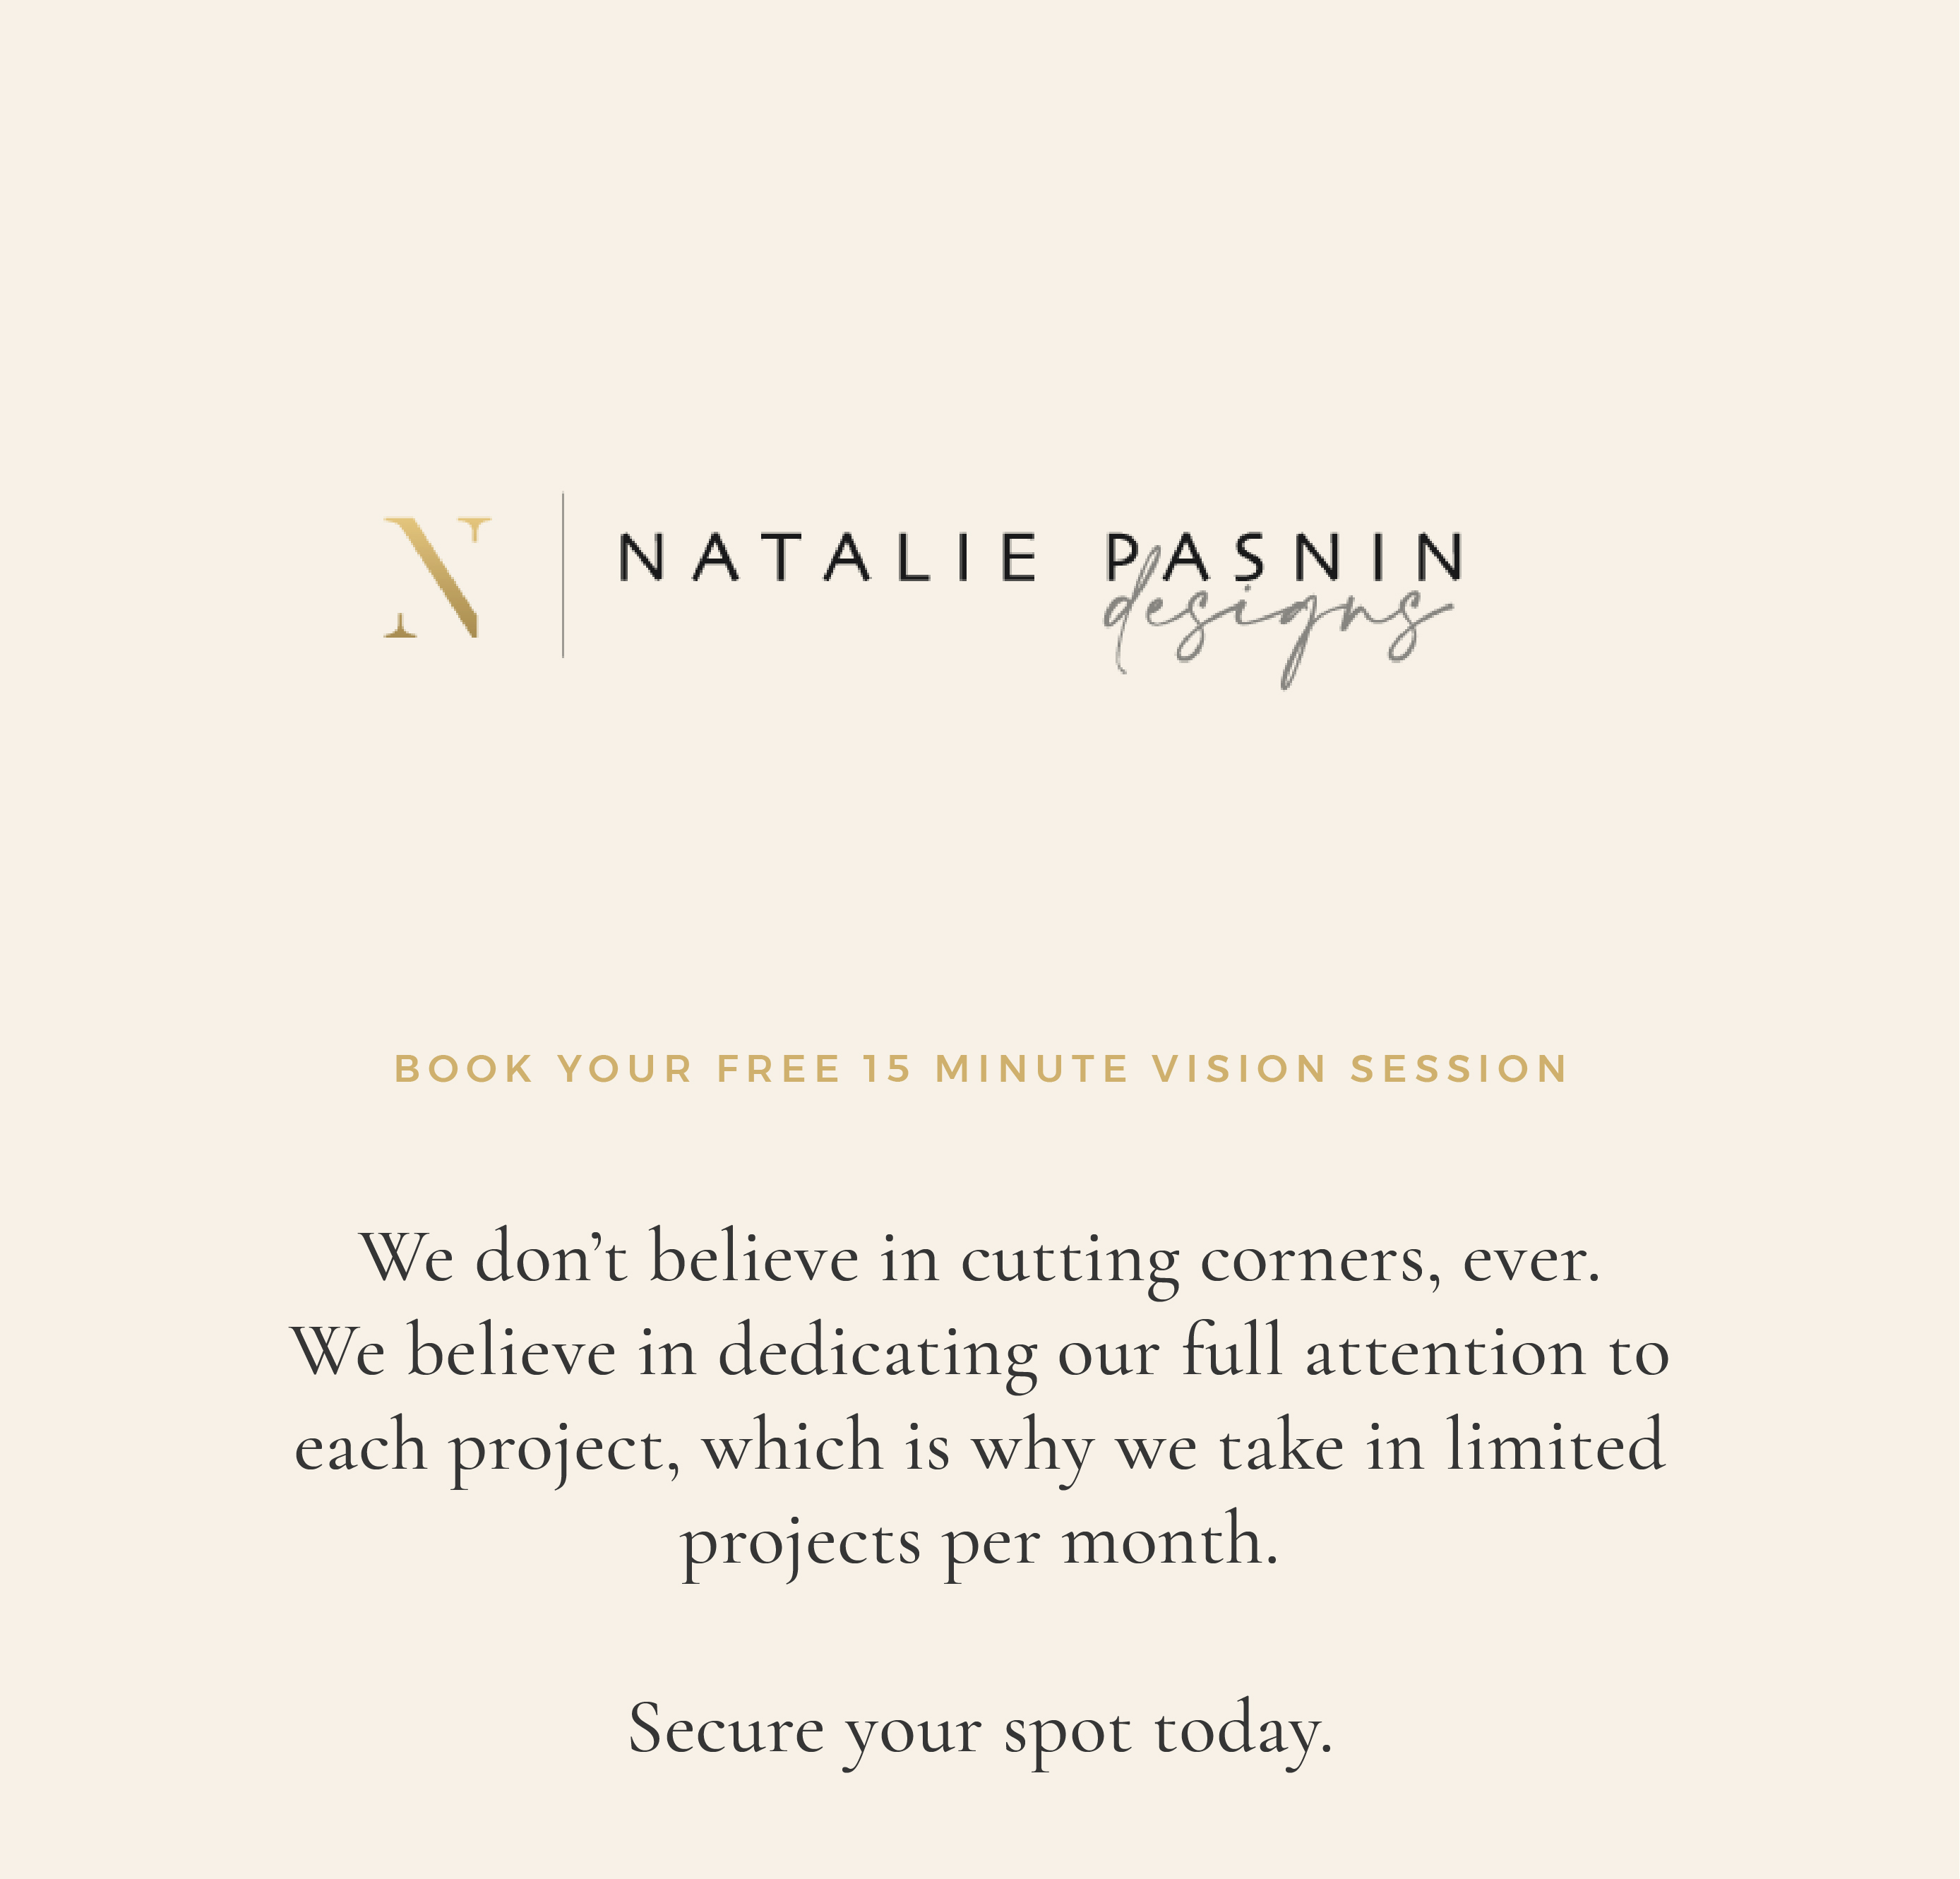 Natalie Pasnin Designs - Pop Up - Consultation Messaging